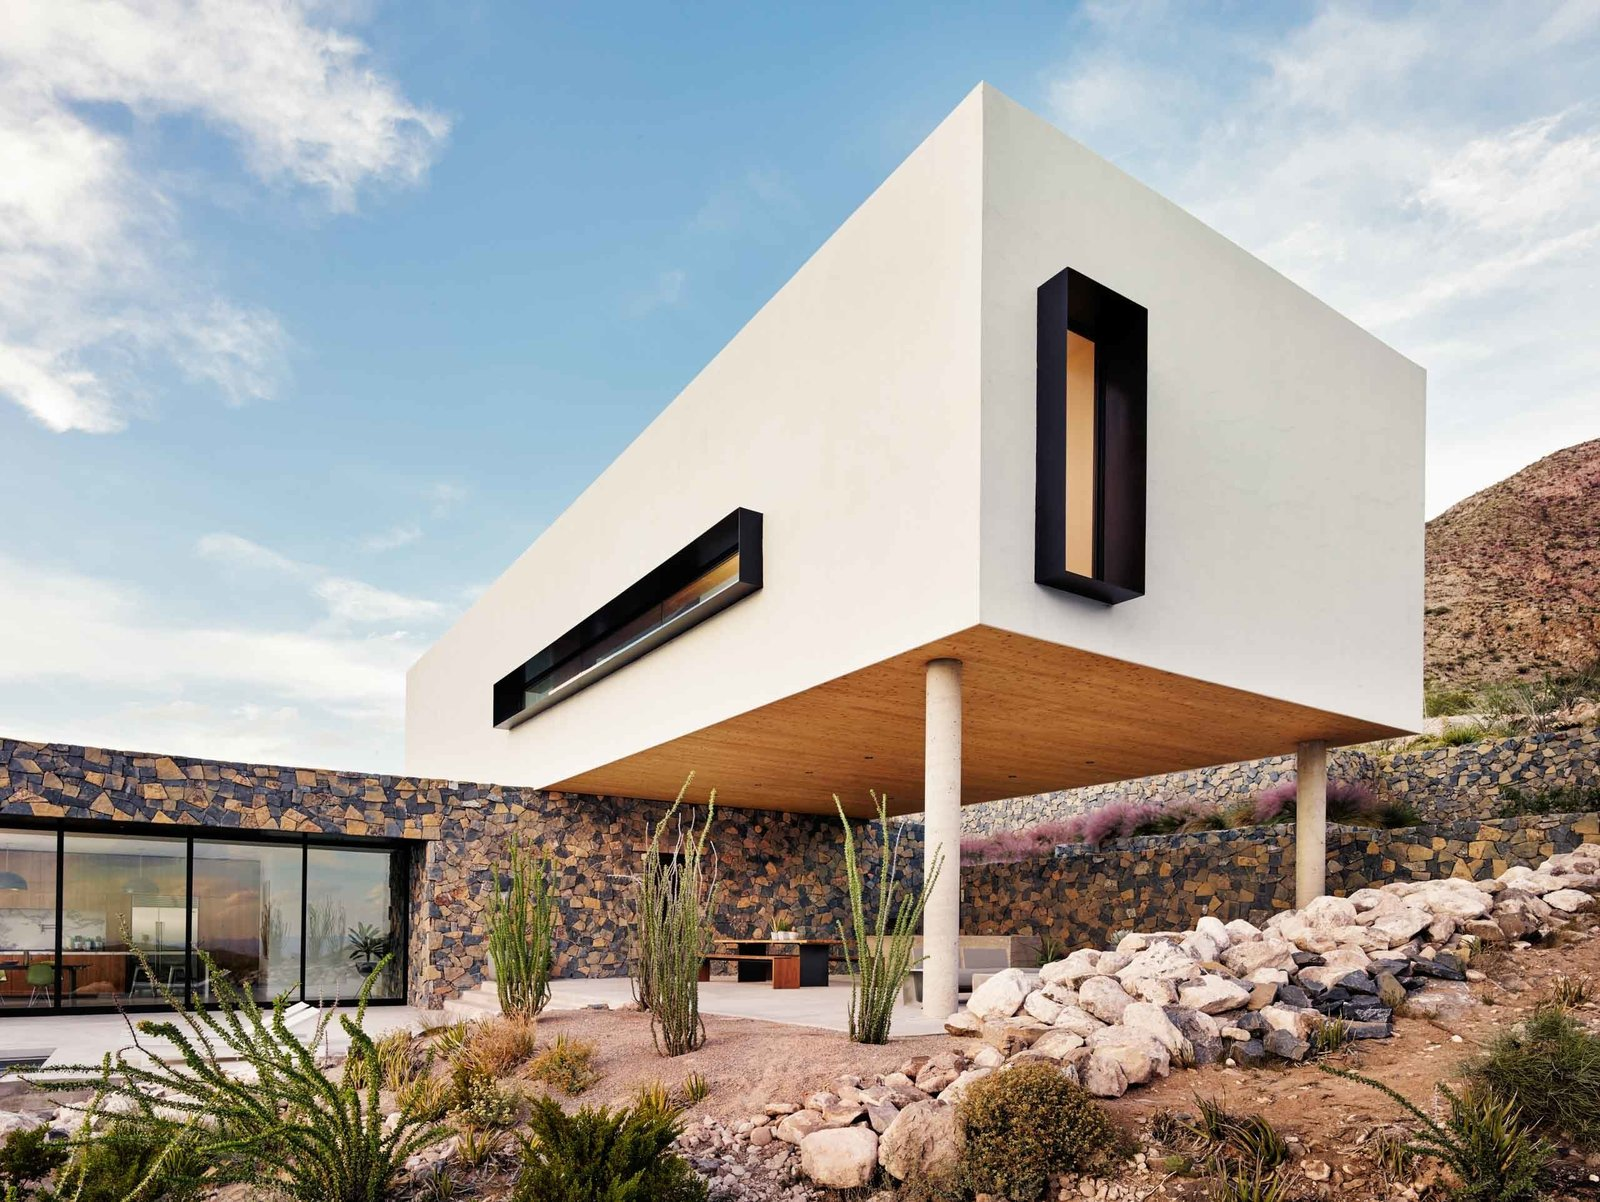 The white stucco volume stands out amid the rocky terrain of the Franklin Mountains near El Paso.  West Texas Vistas by Western Window Systems